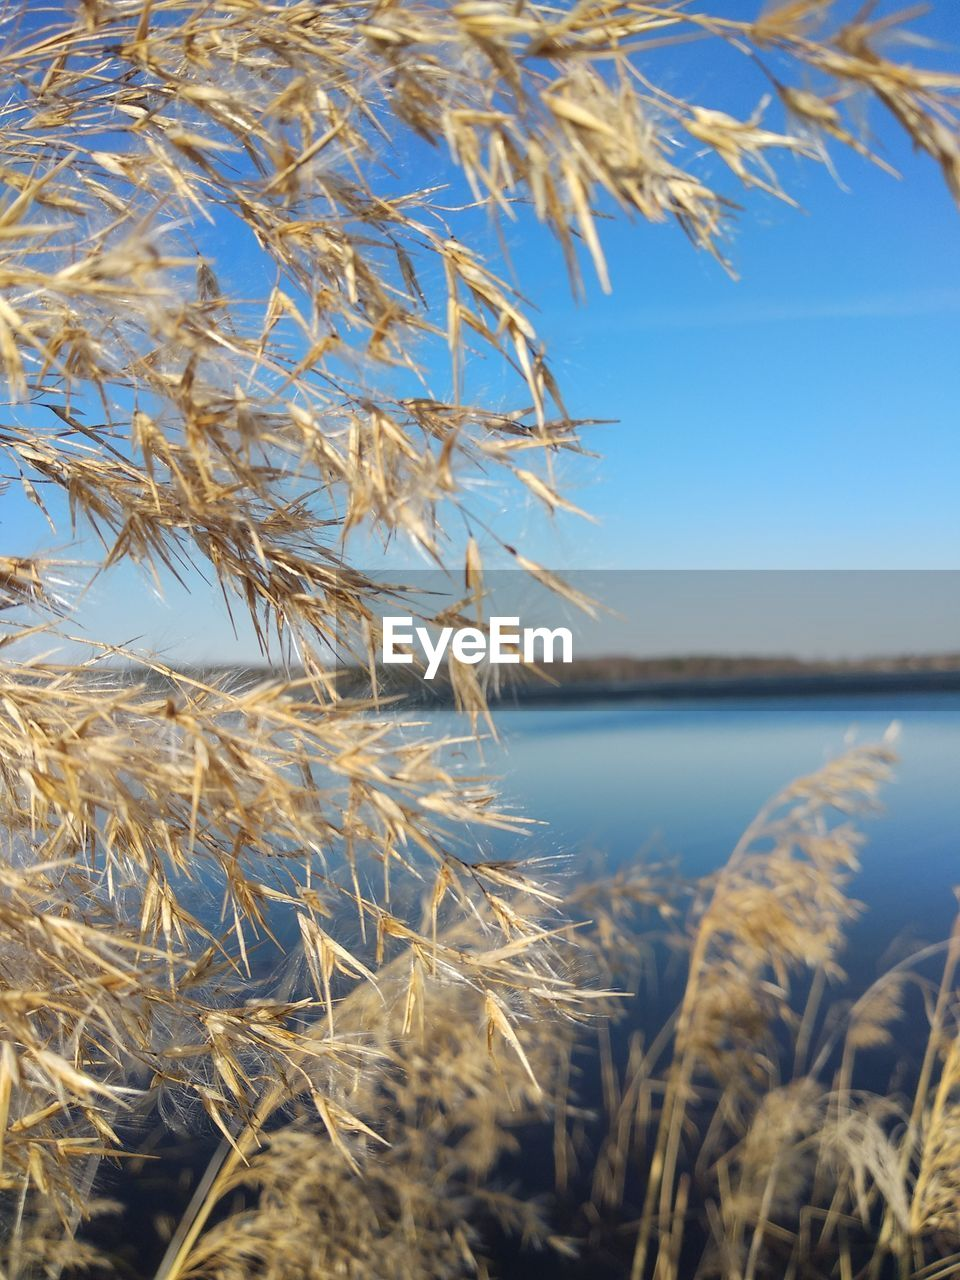 plant, beauty in nature, nature, focus on foreground, close-up, growth, day, tranquility, no people, water, sky, selective focus, outdoors, lake, land, sunlight, scenics - nature, landscape, tranquil scene, stalk